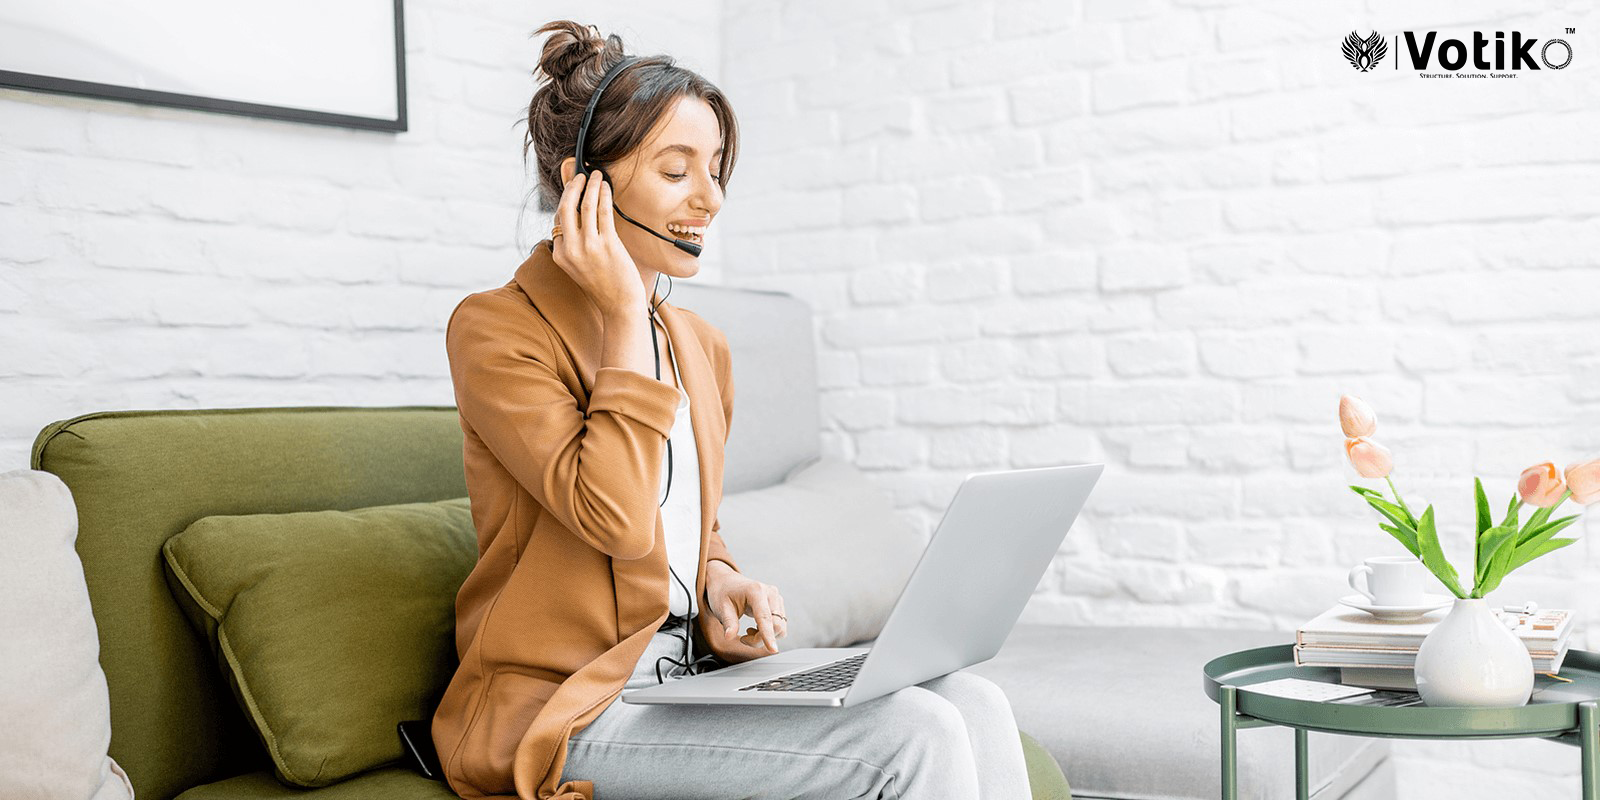 Top Reasons Why Working in a Call Center Is a Good Choice for New Graduates